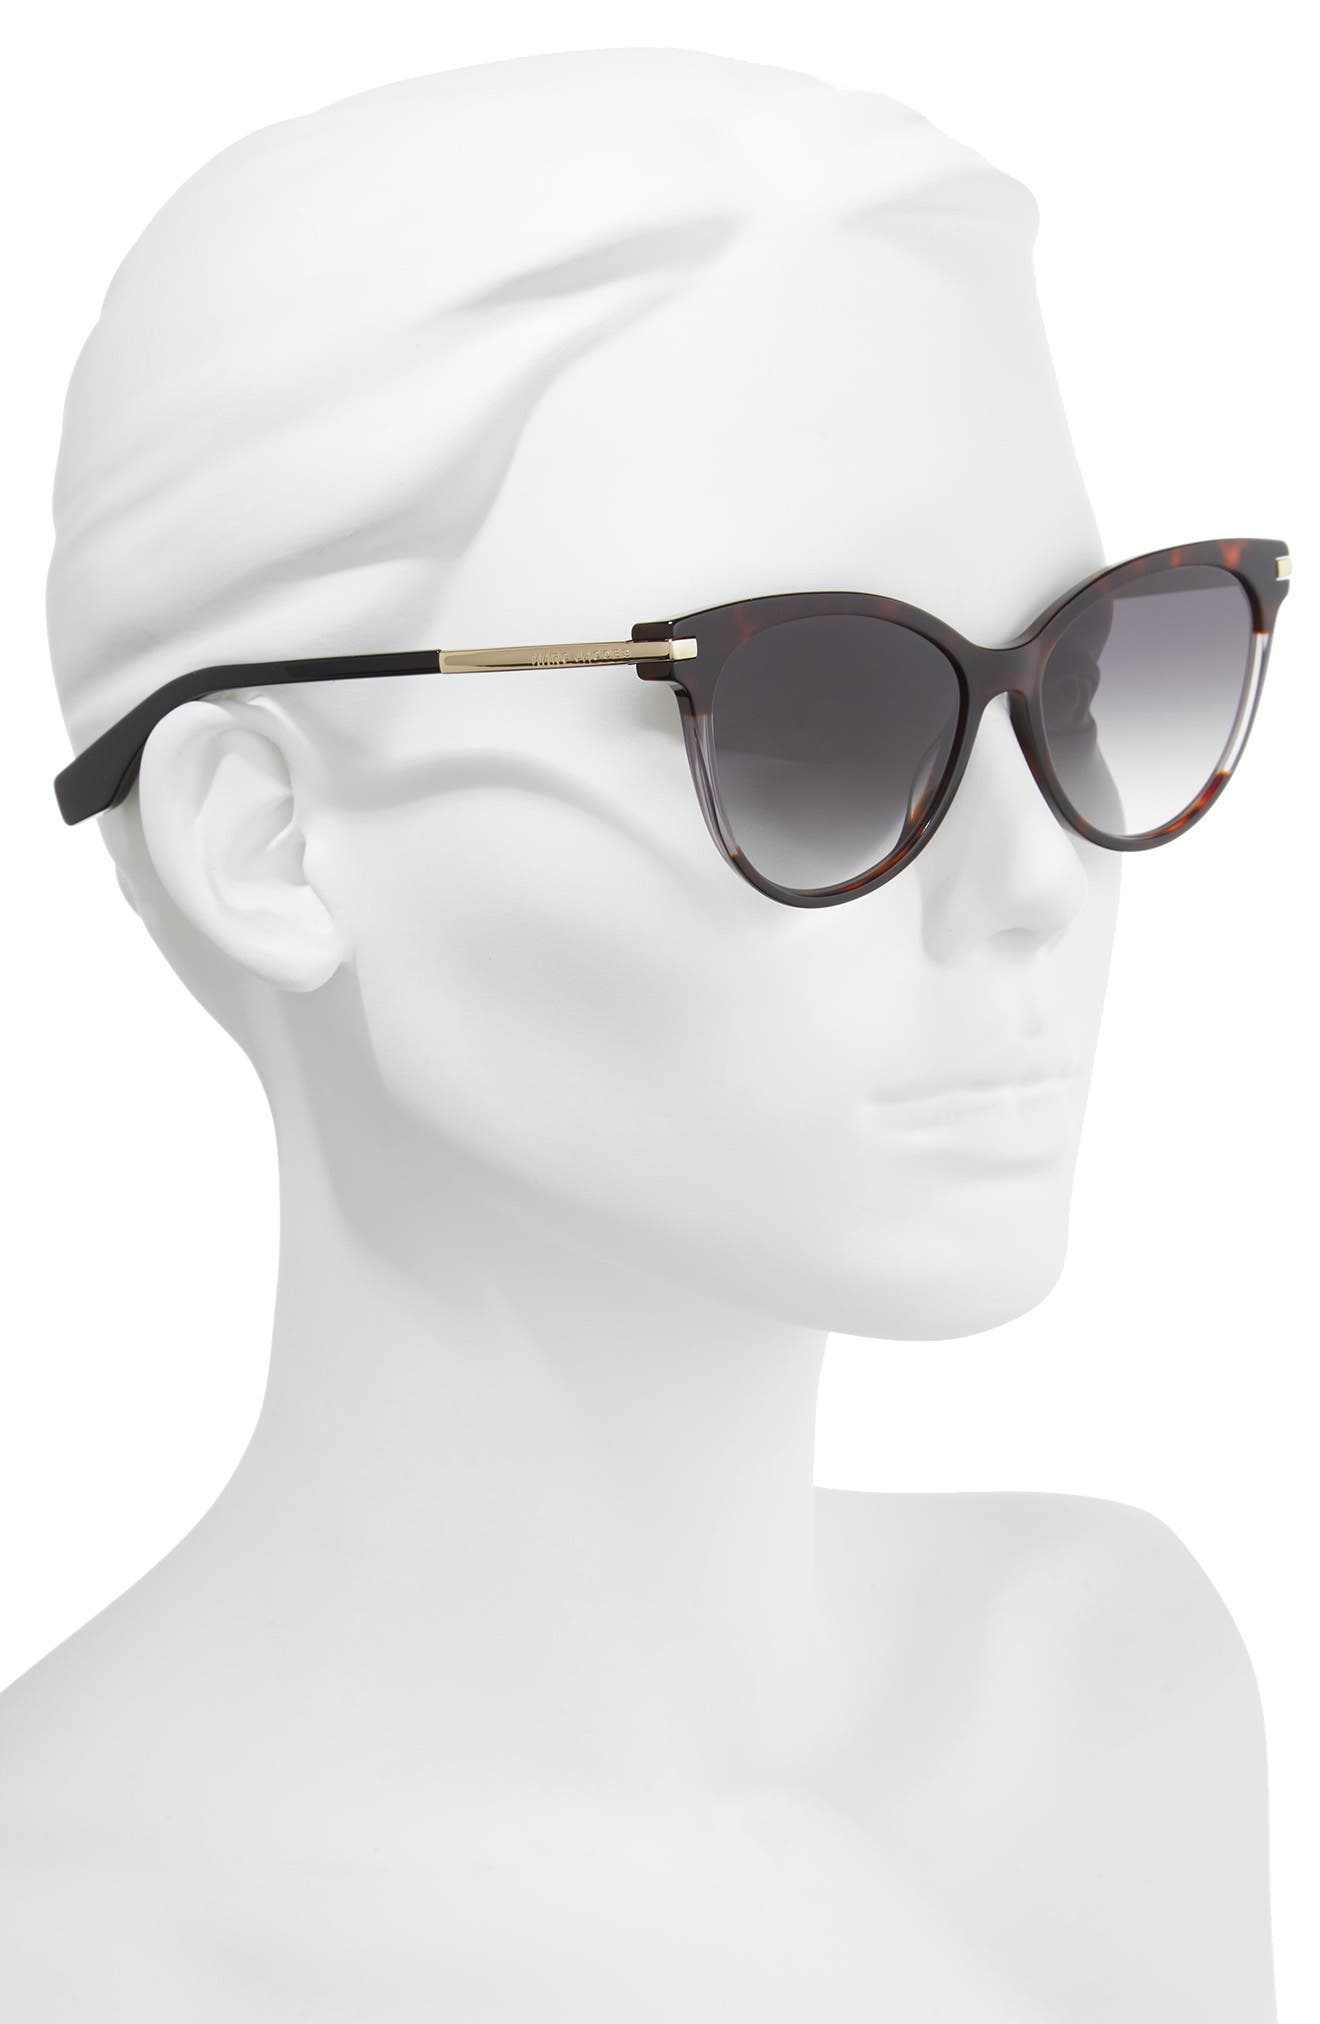 55mm Cat Eye Sunglasses,                             Alternate thumbnail 3, color,                             Dark Havana